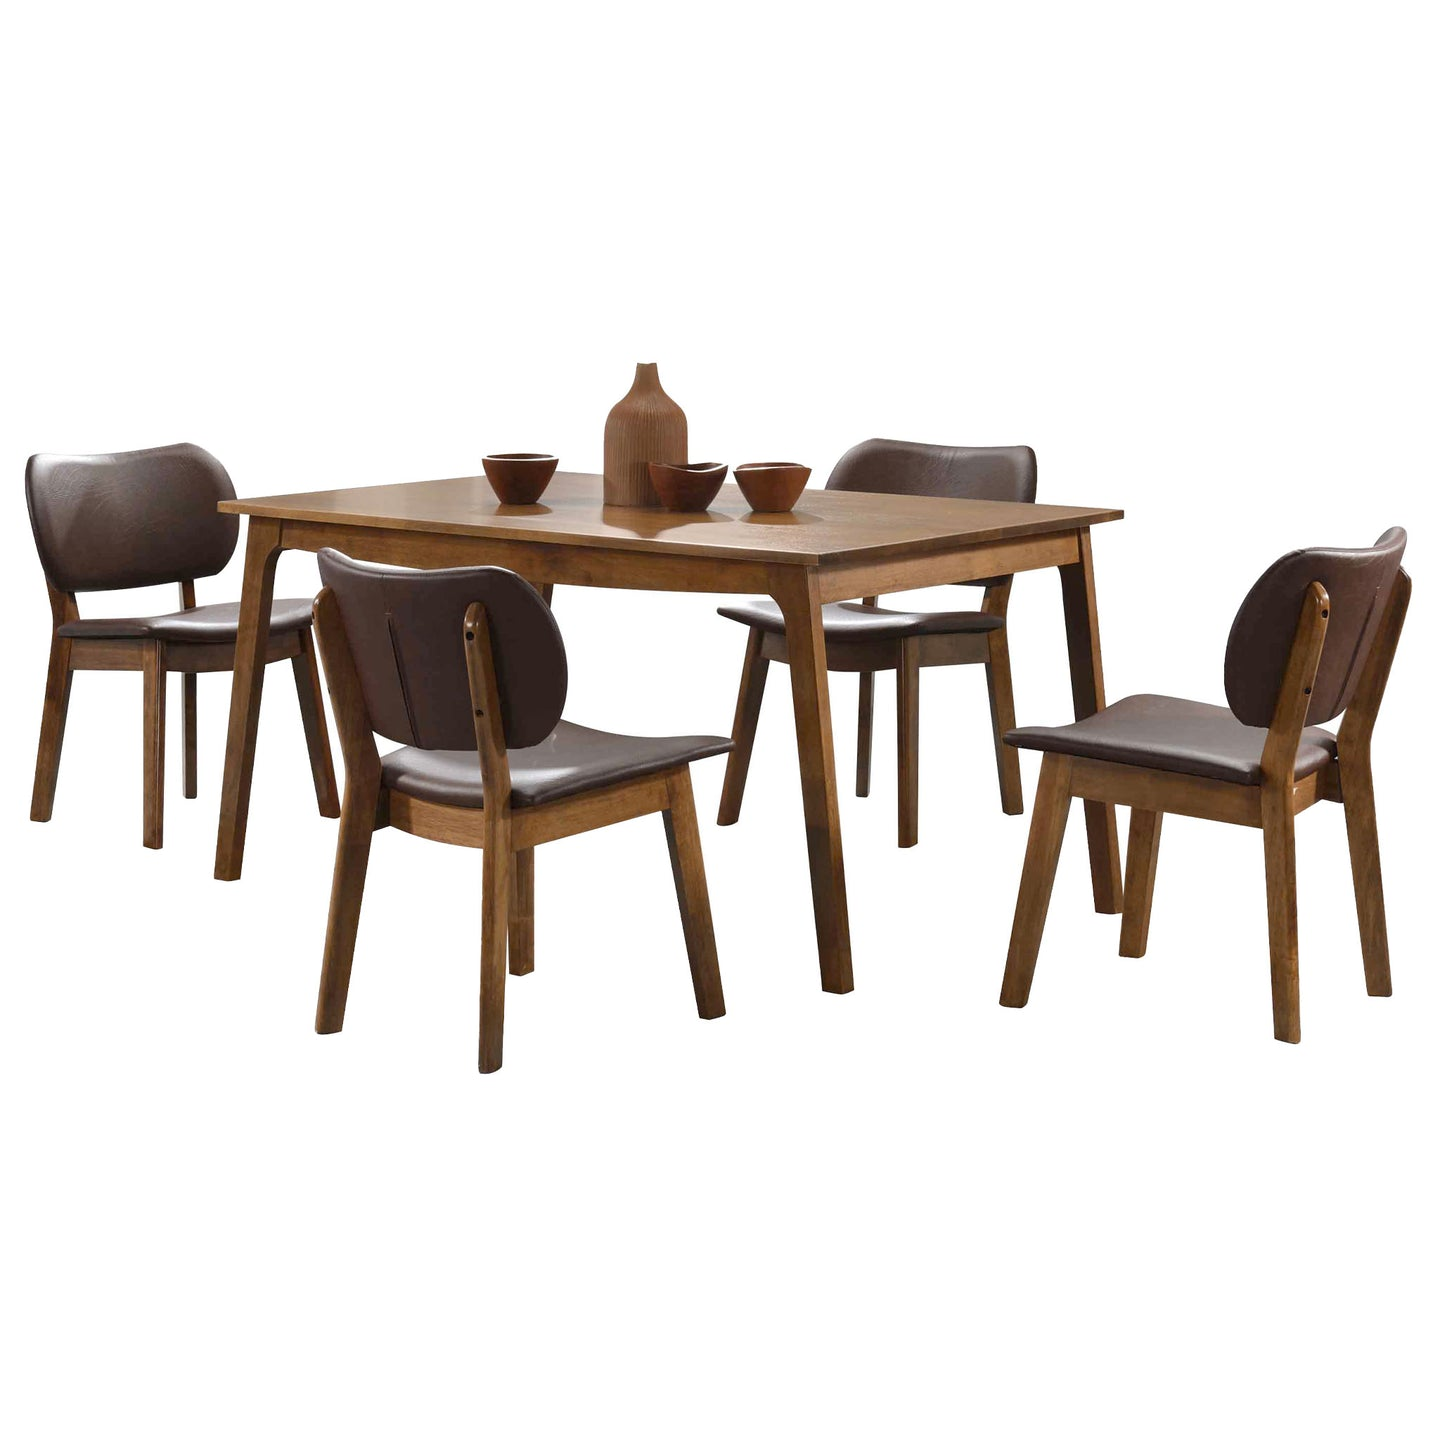 Wright 5 Piece Brown Faux Leather Walnut Wood Dining Set